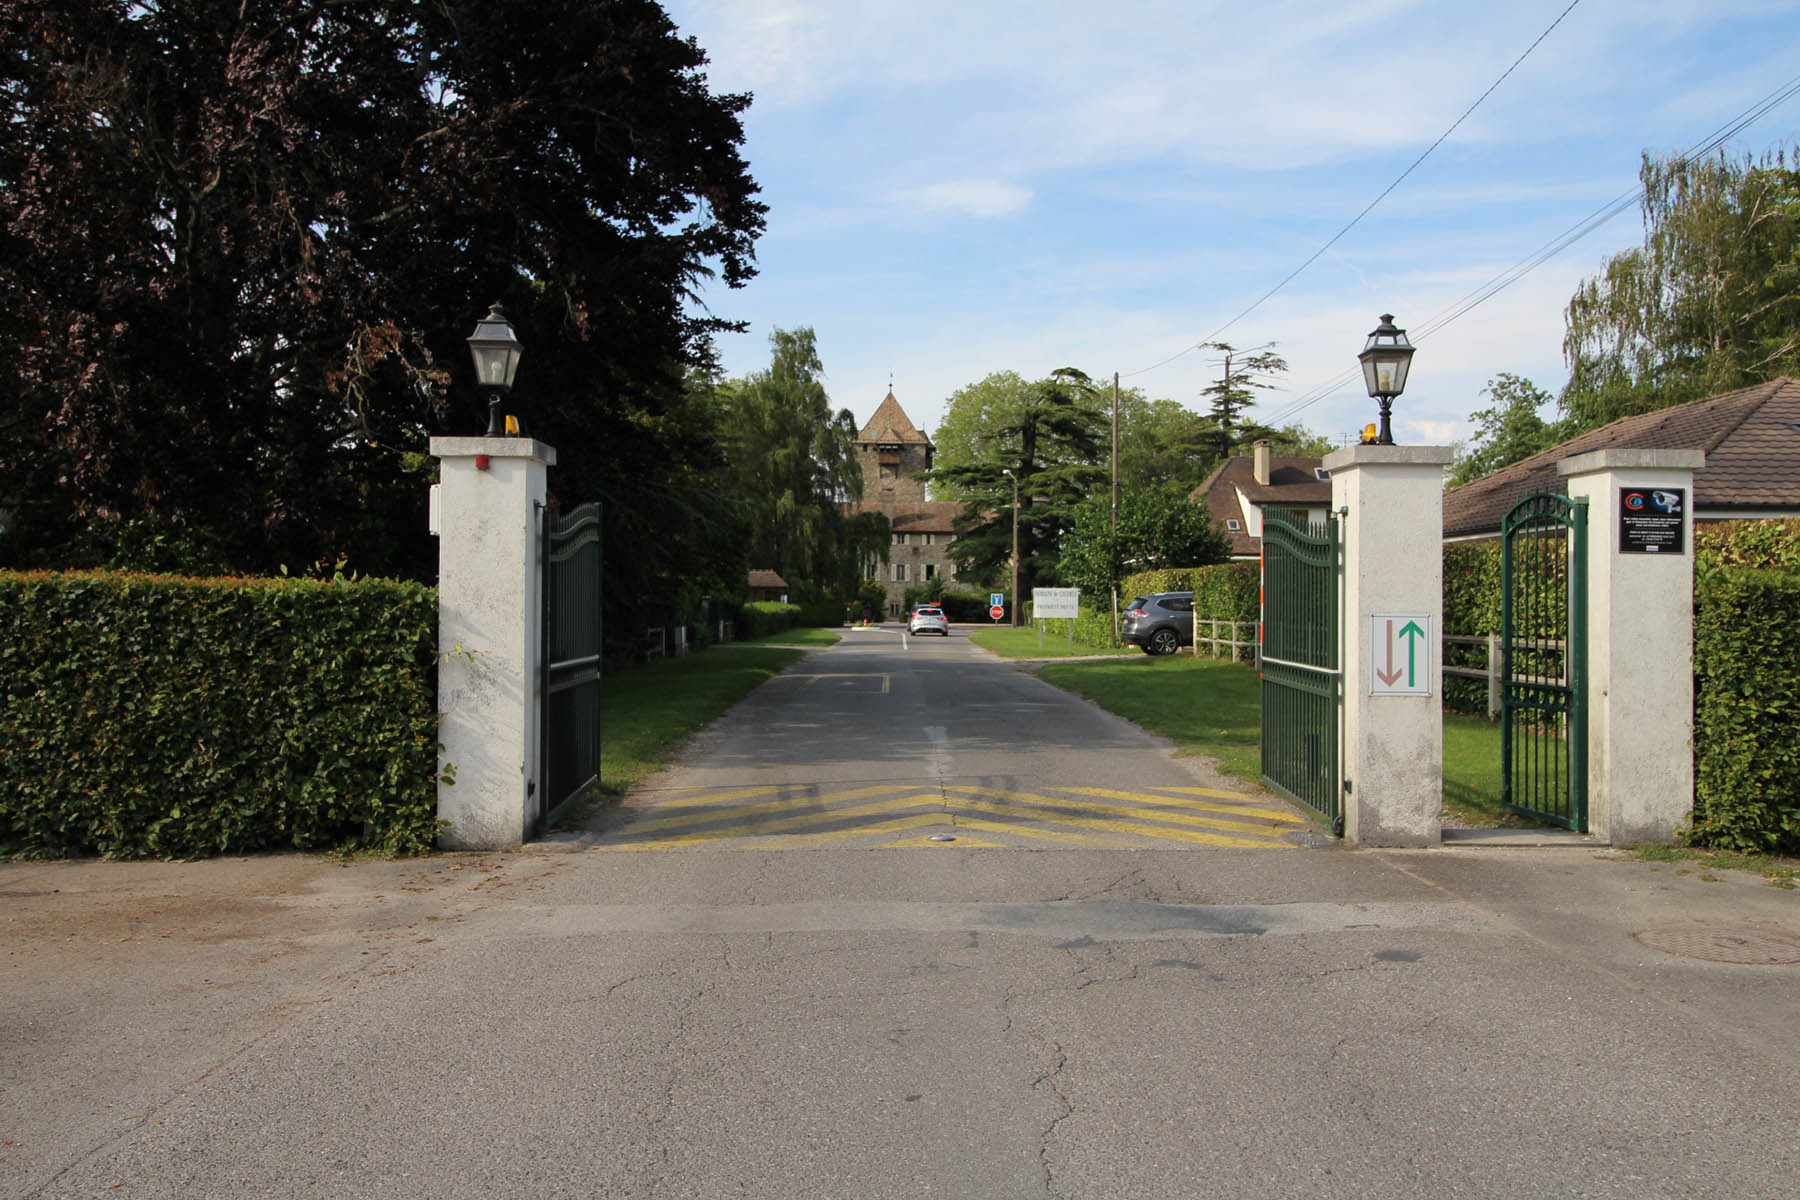 Coudree Gated entrance